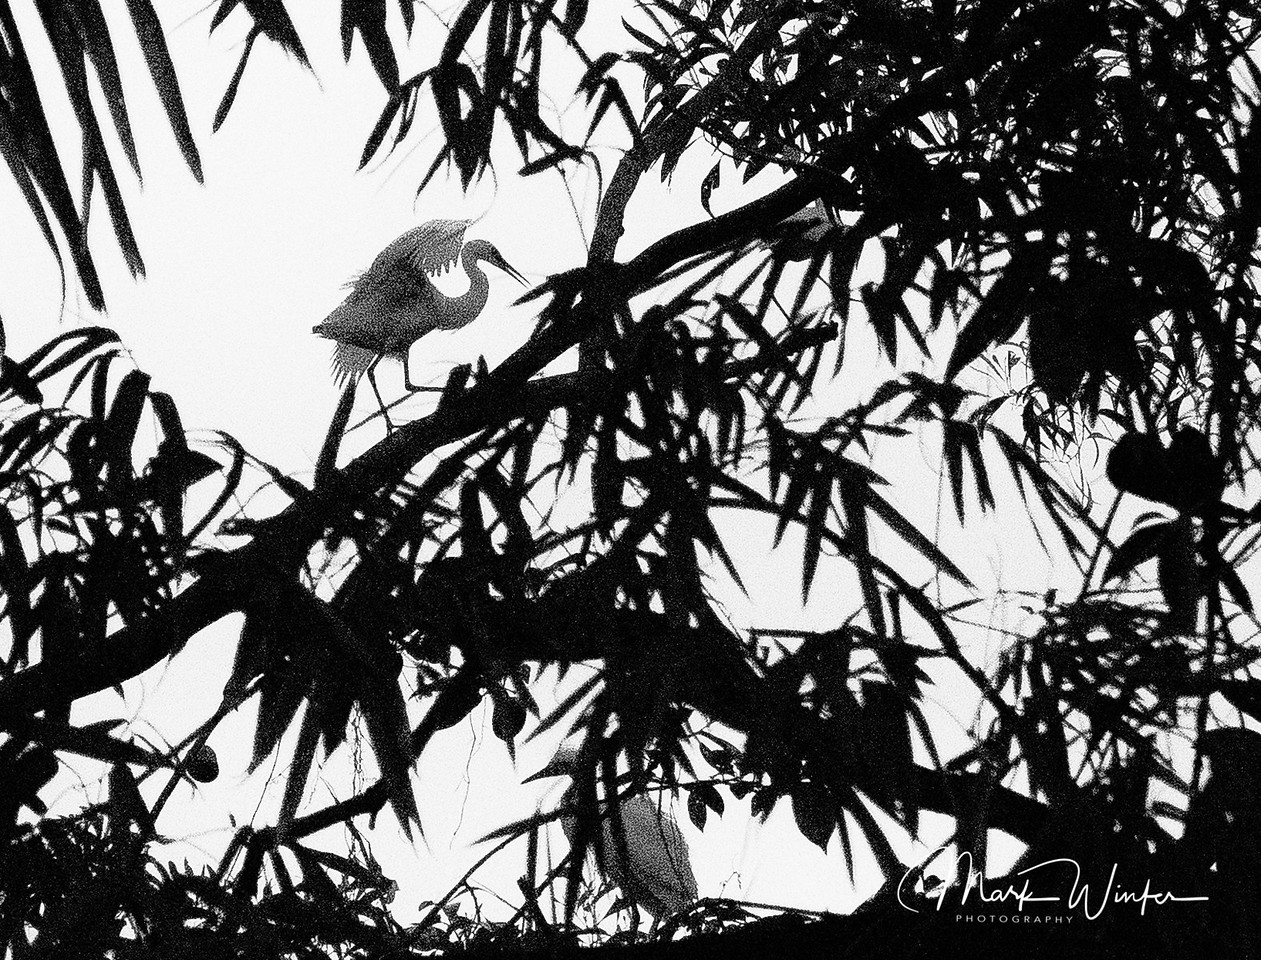 At 5:00 in the park, these birds flock together to spend the night, Ca Mau